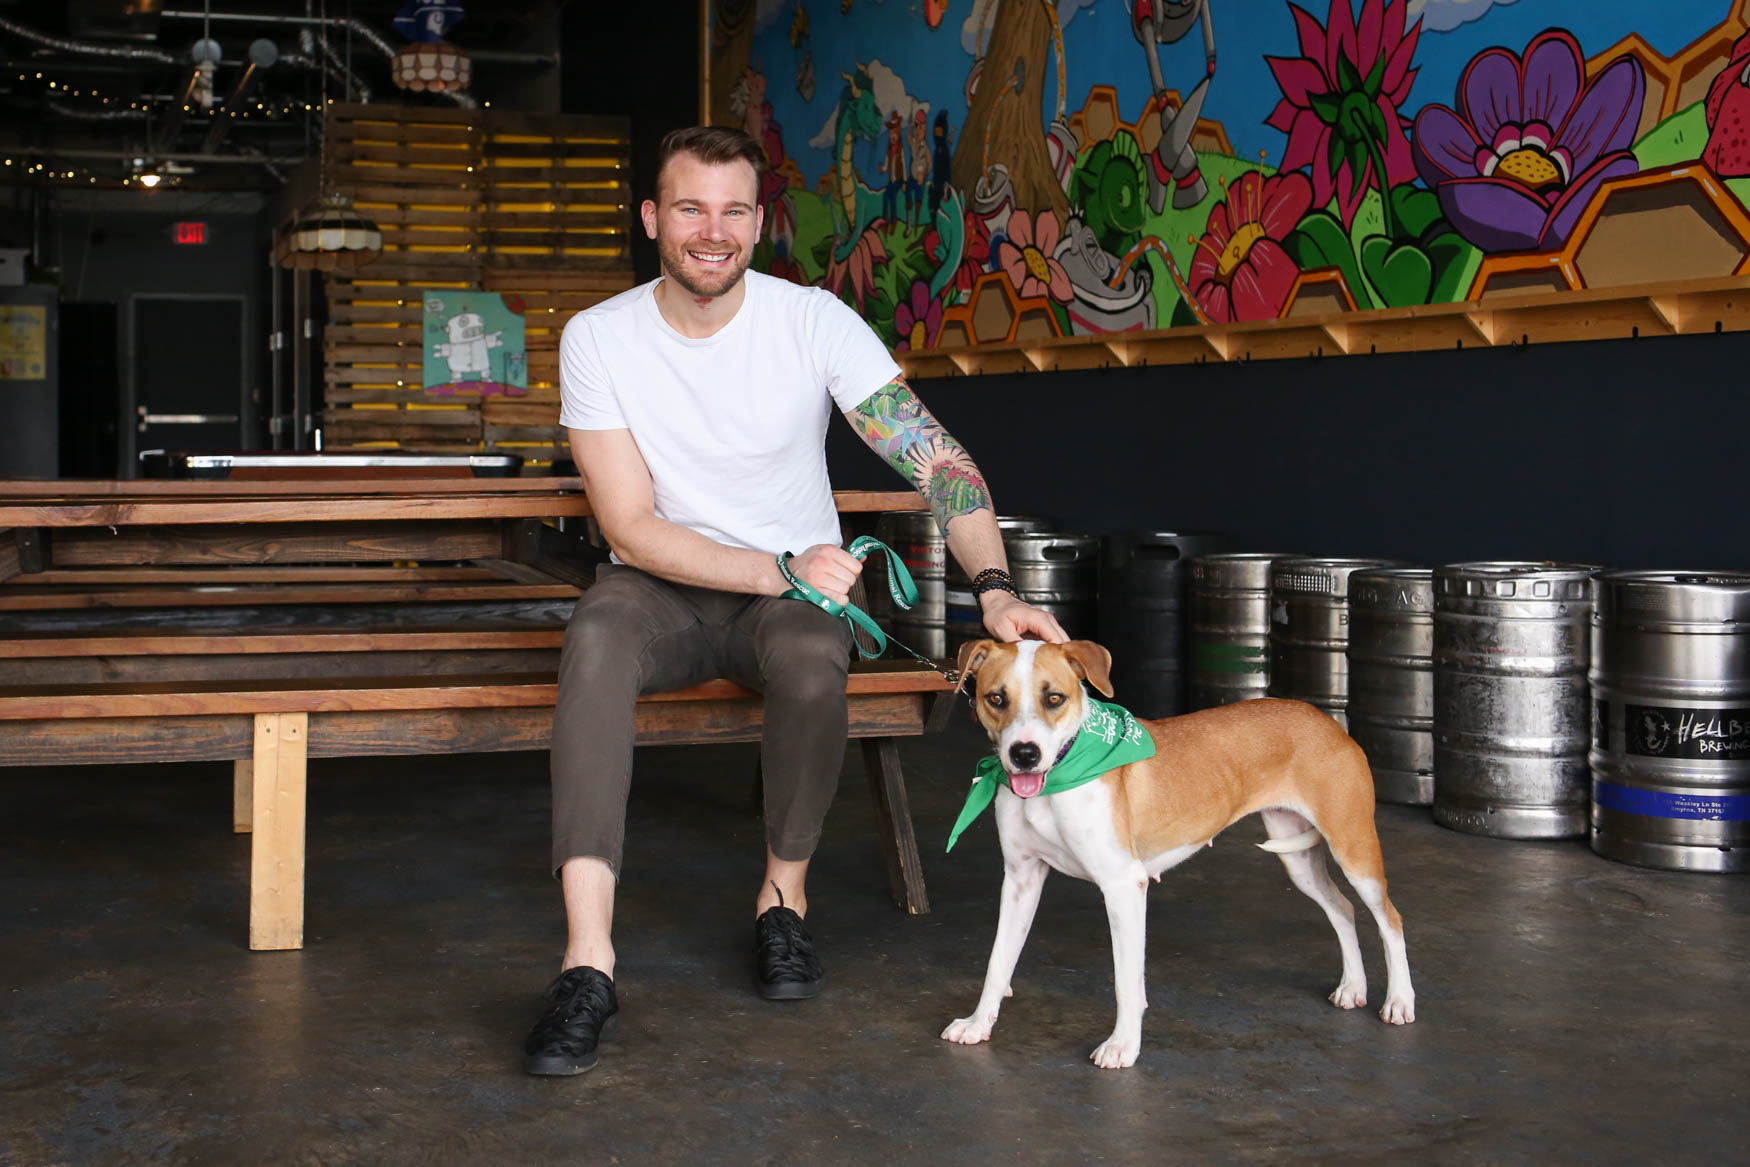 Meet Sadie and Matt, a 3-year-old Lab mix and a 32-year-old human respectively. Photo location: Midlands Beer Garden (Image: Amanda Andrade-Rhoades/ DC Refined)